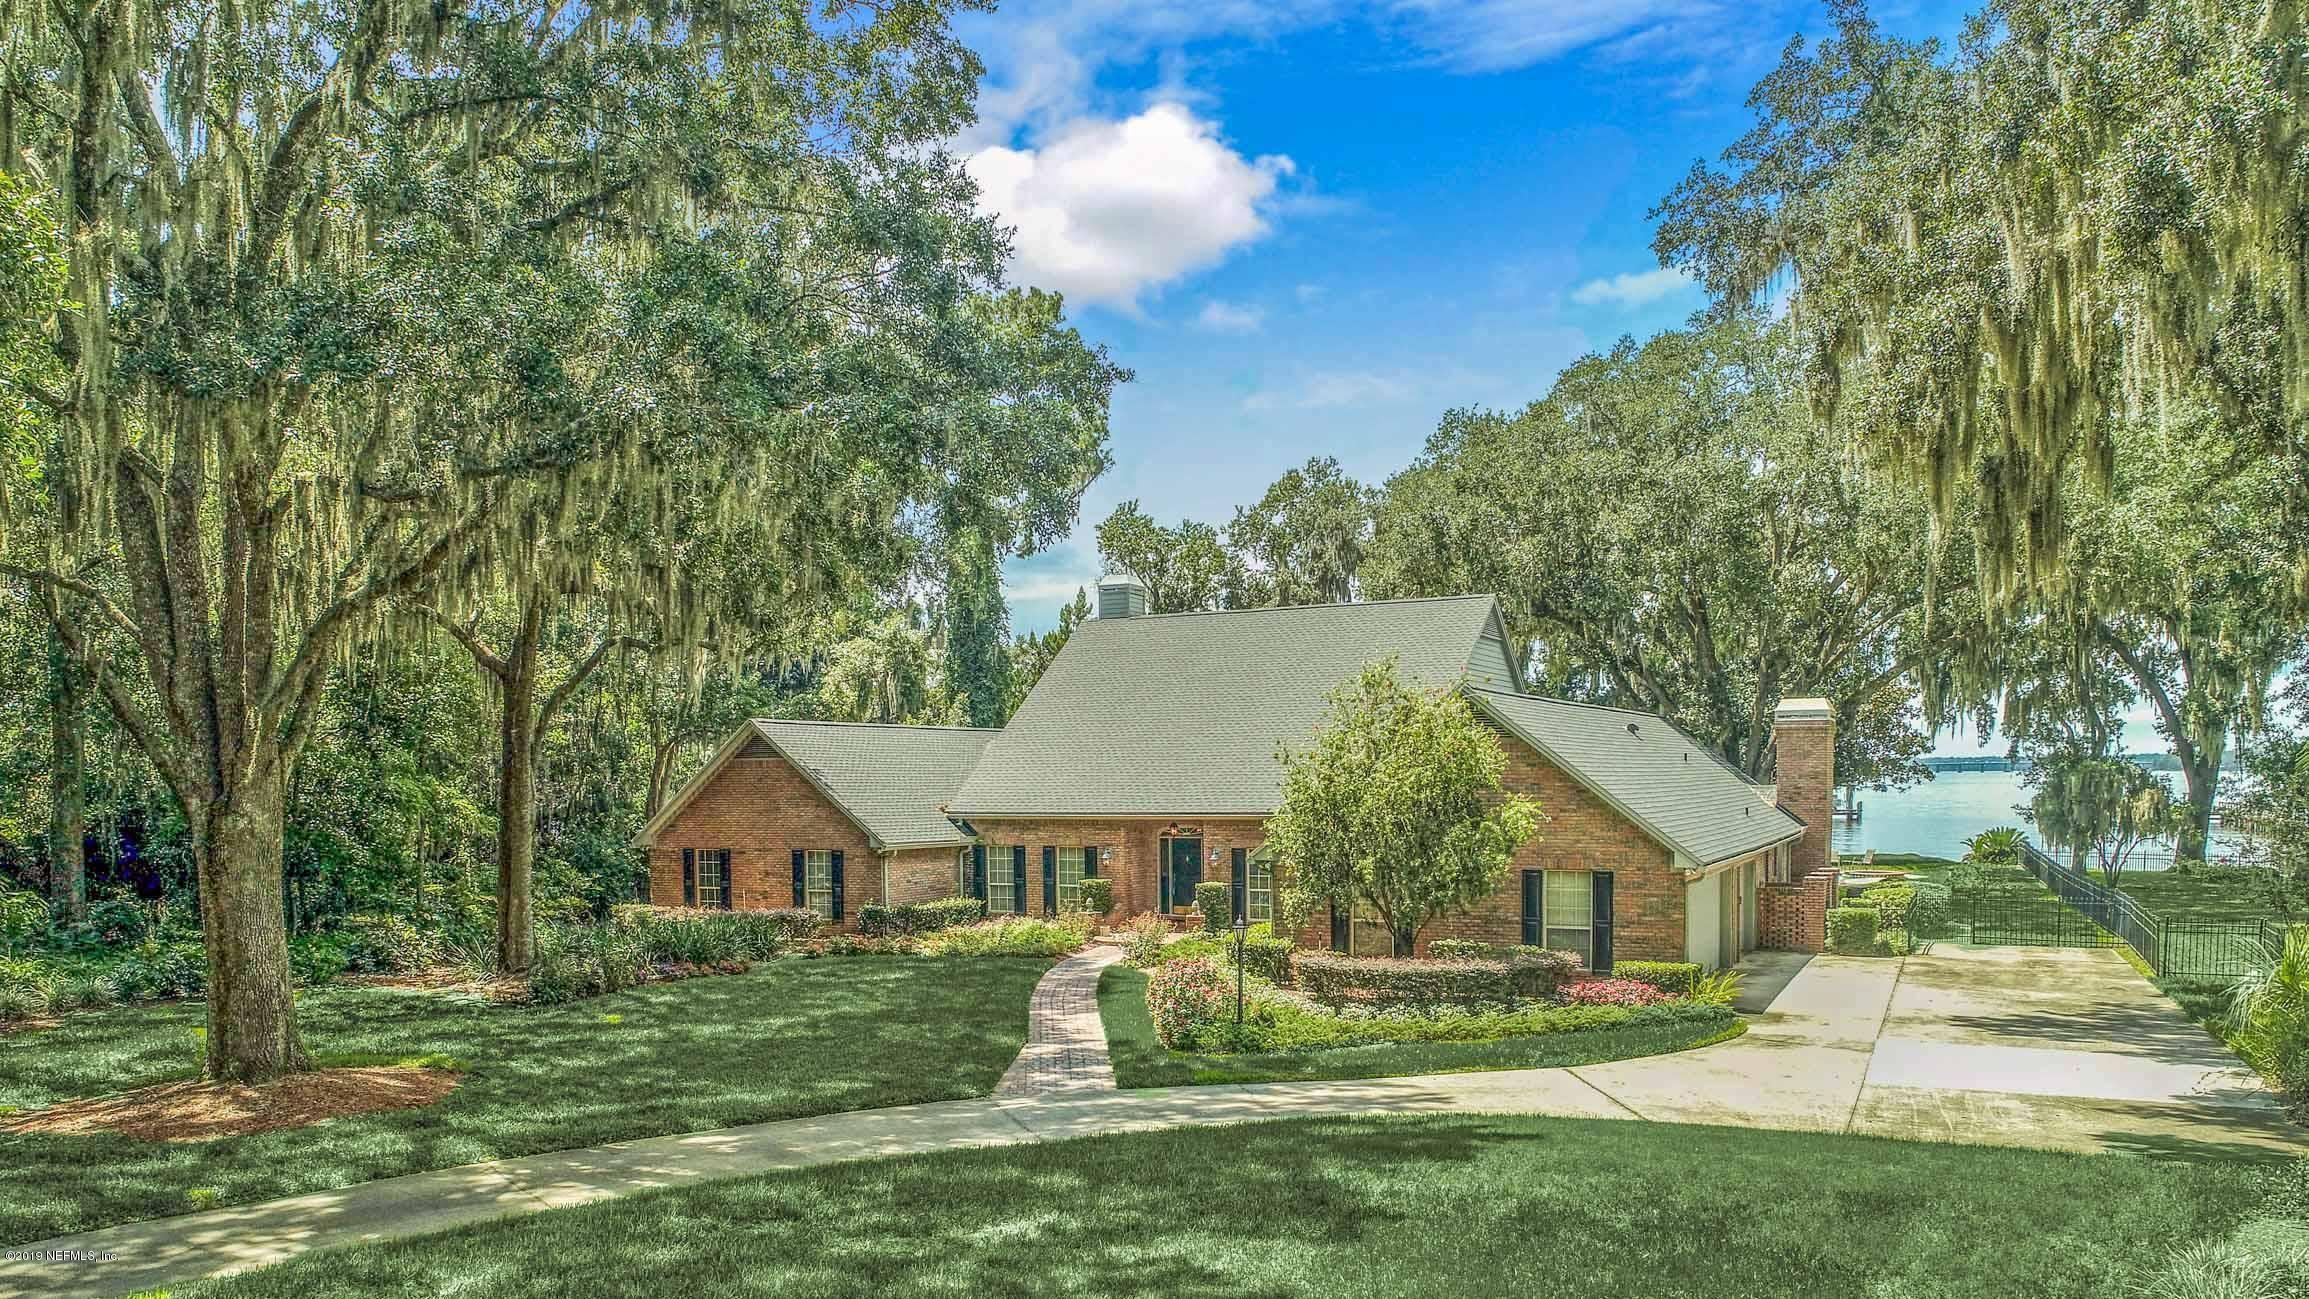 1220 JOURNEYS END, JACKSONVILLE, FLORIDA 32223, 4 Bedrooms Bedrooms, ,4 BathroomsBathrooms,Residential - single family,For sale,JOURNEYS END,1013396